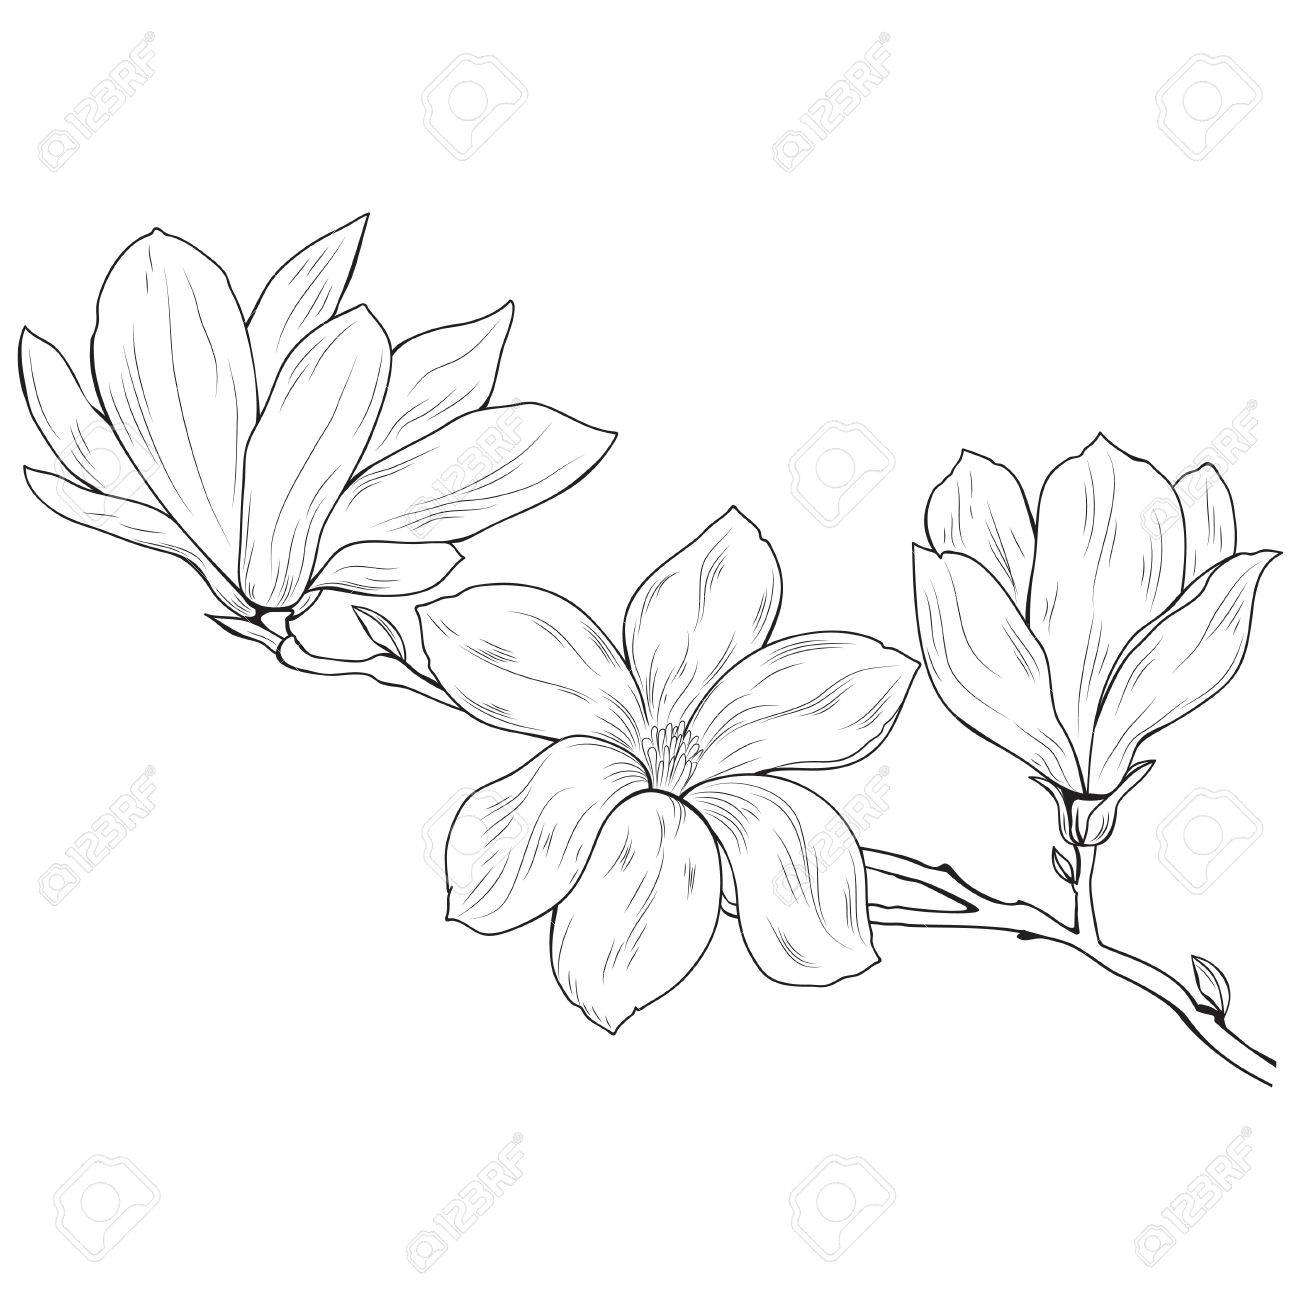 Magnolia Flowers On A Tree Branch Sketch Black On White Background